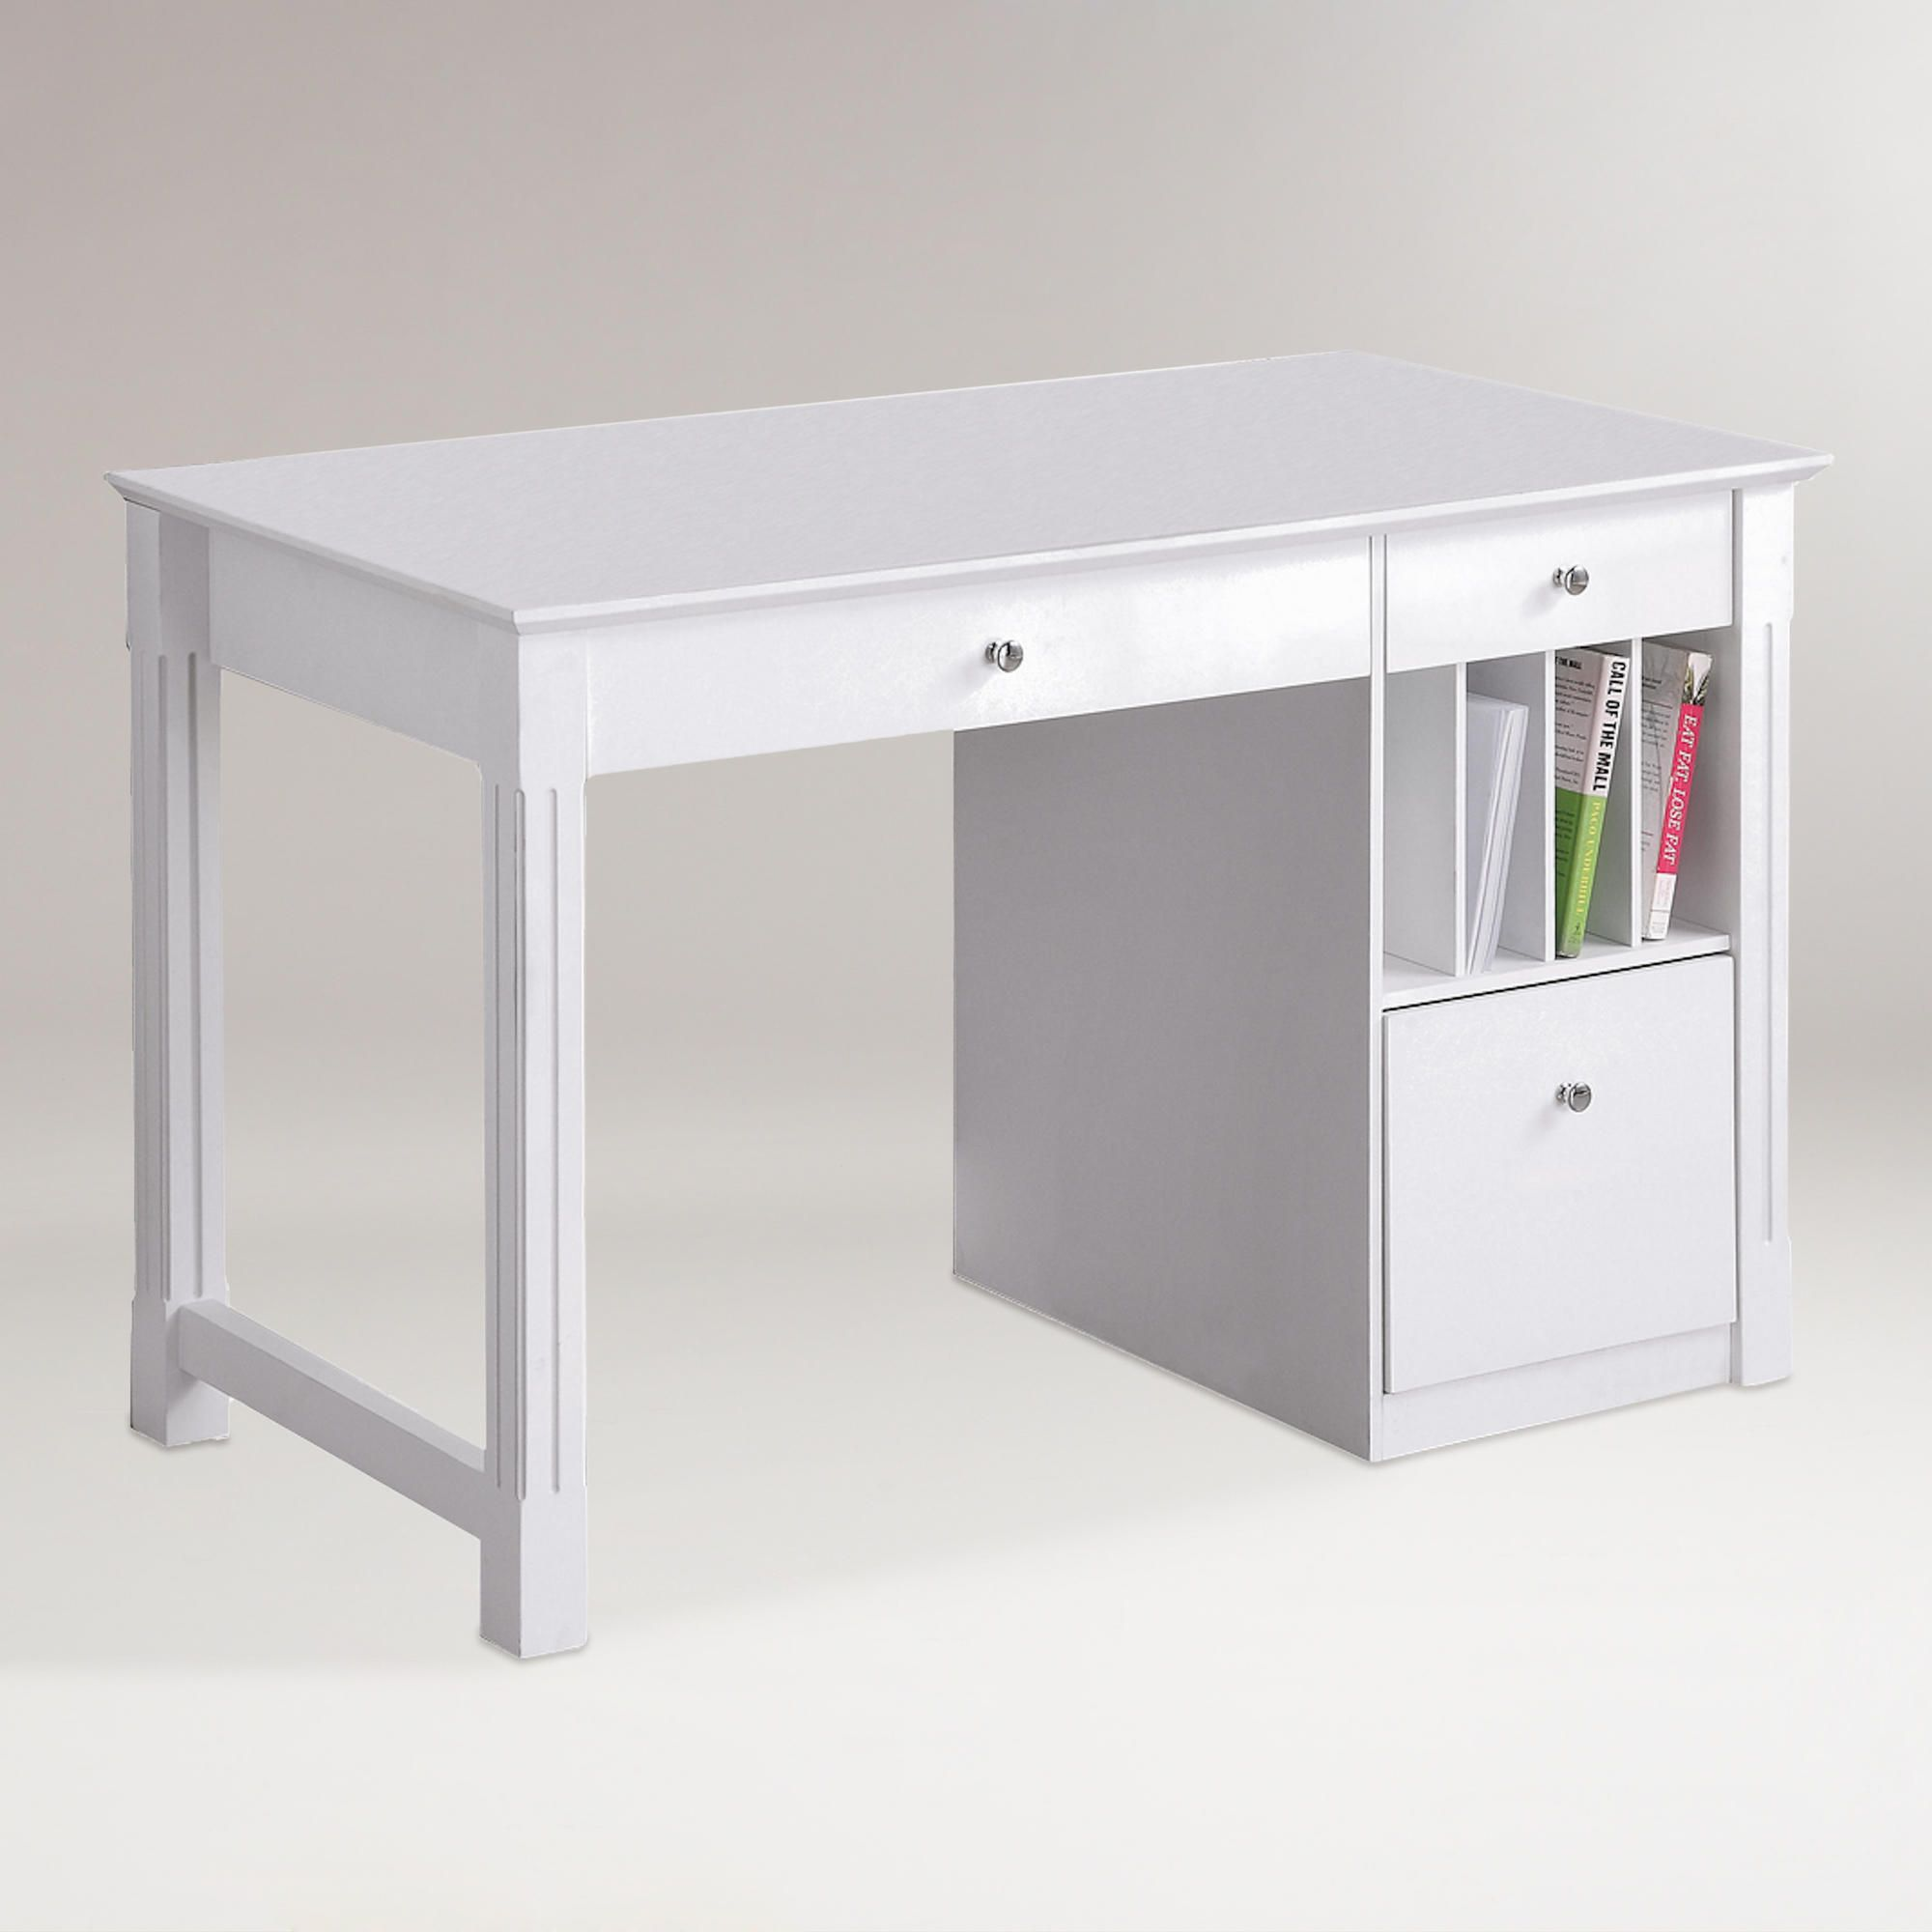 black ikea free place the nail desk for modern are full furniture size download looking office salon reception in you now table of then area right uk design model